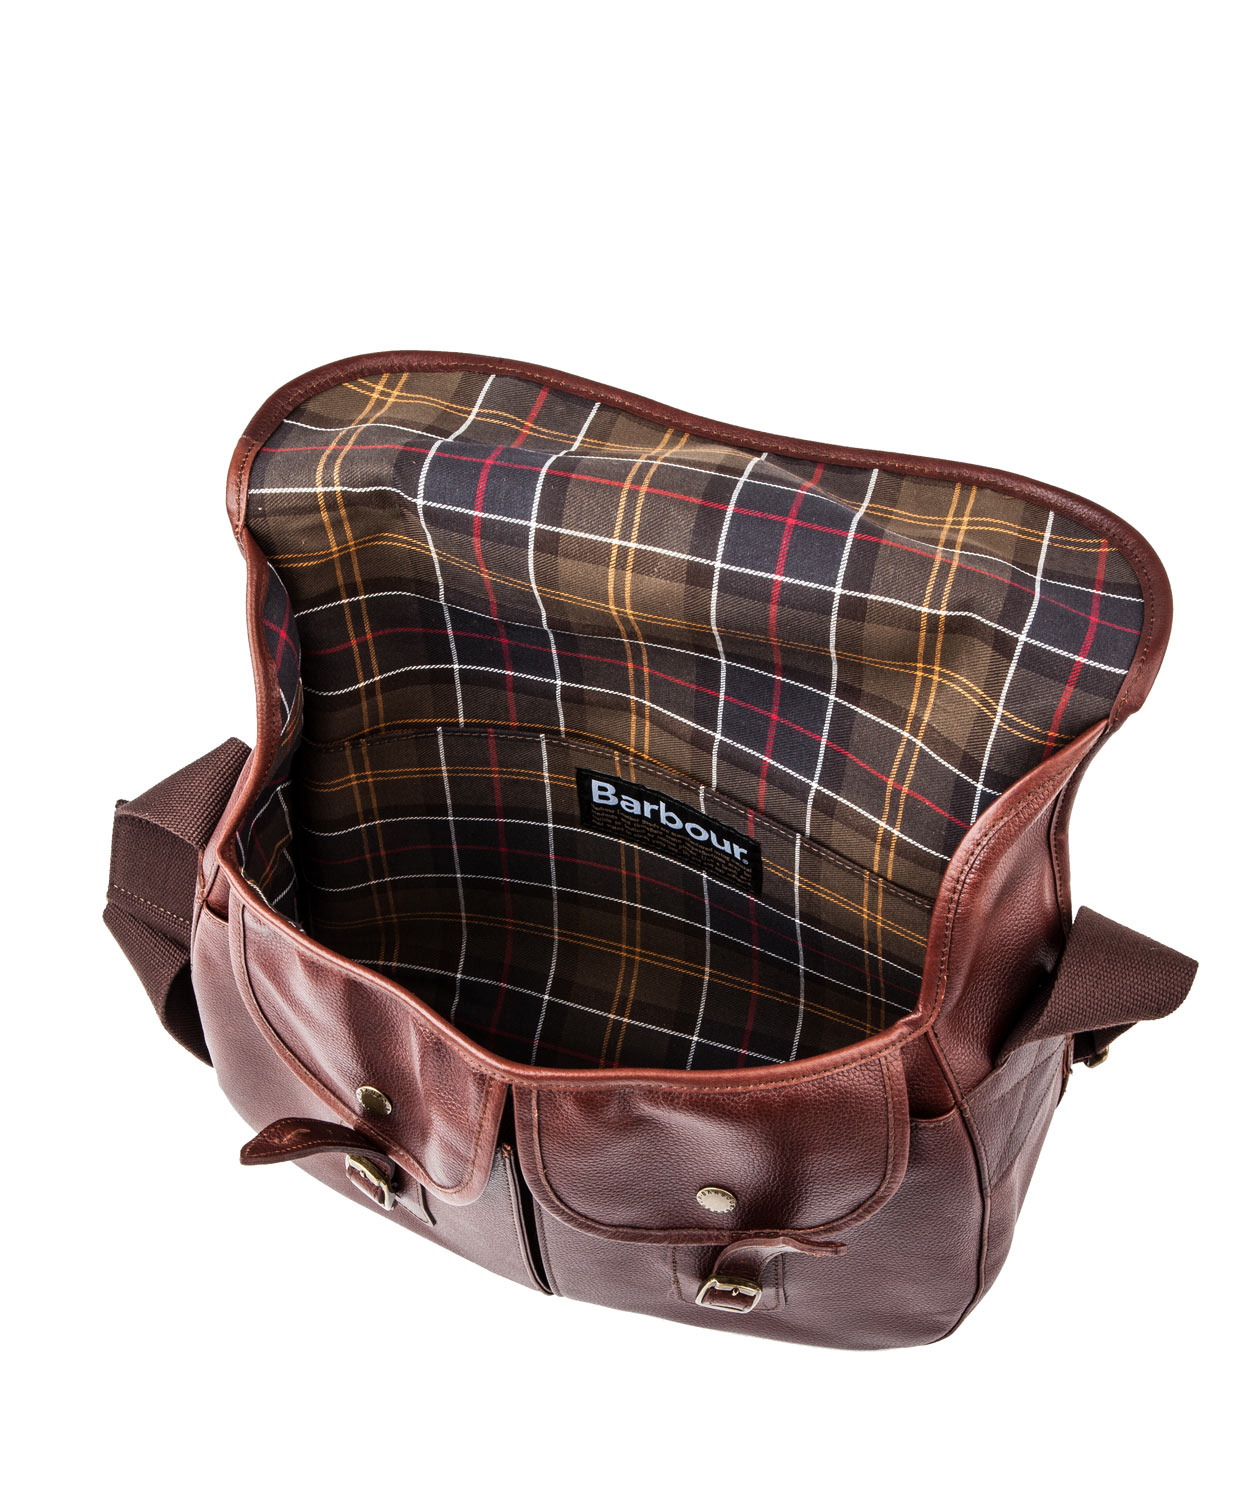 a7825b1e146 Barbour Dark Brown Leather Tarras Satchel in Brown for Men - Lyst